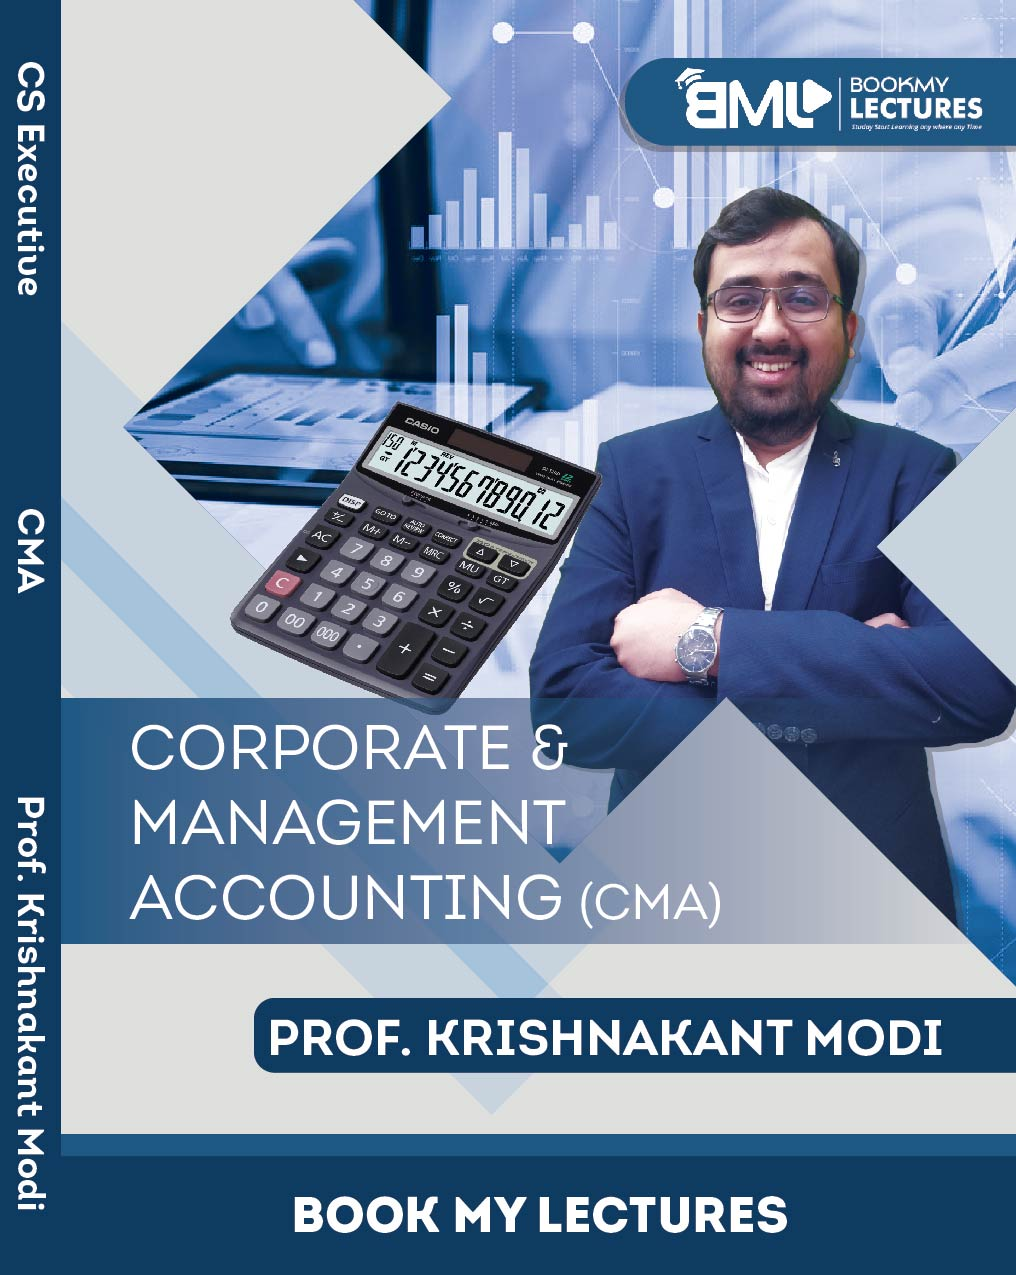 Best CS Executive Classes -CMA - Prof. Krishnakant Modi